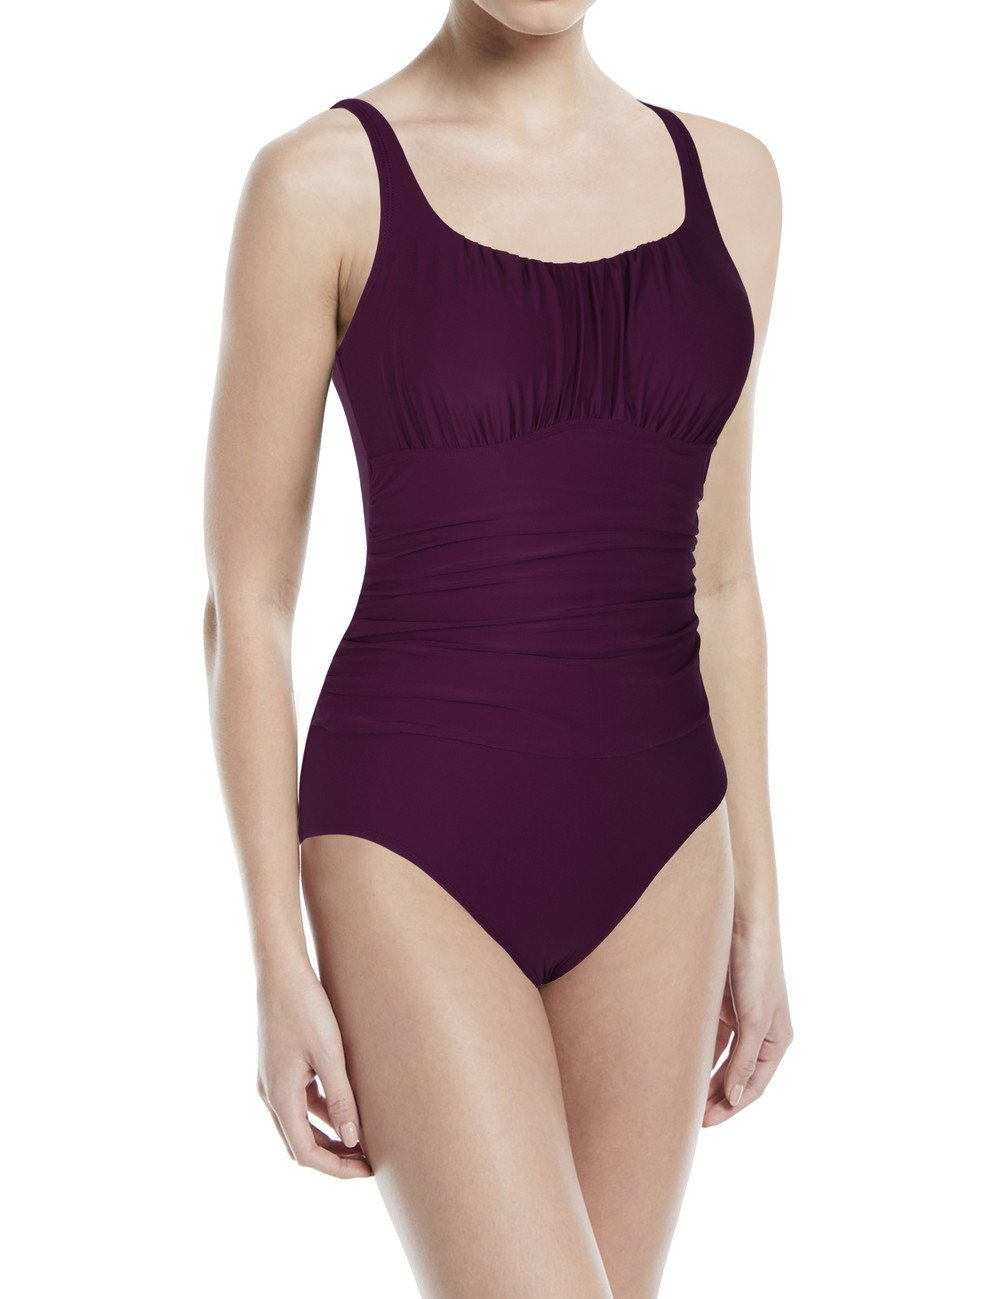 Hilor Women's Shirred Bust One Piece Swimwear Tank Swimsuits Wide Straps Bathing Suits Monokinis Burgundy 10